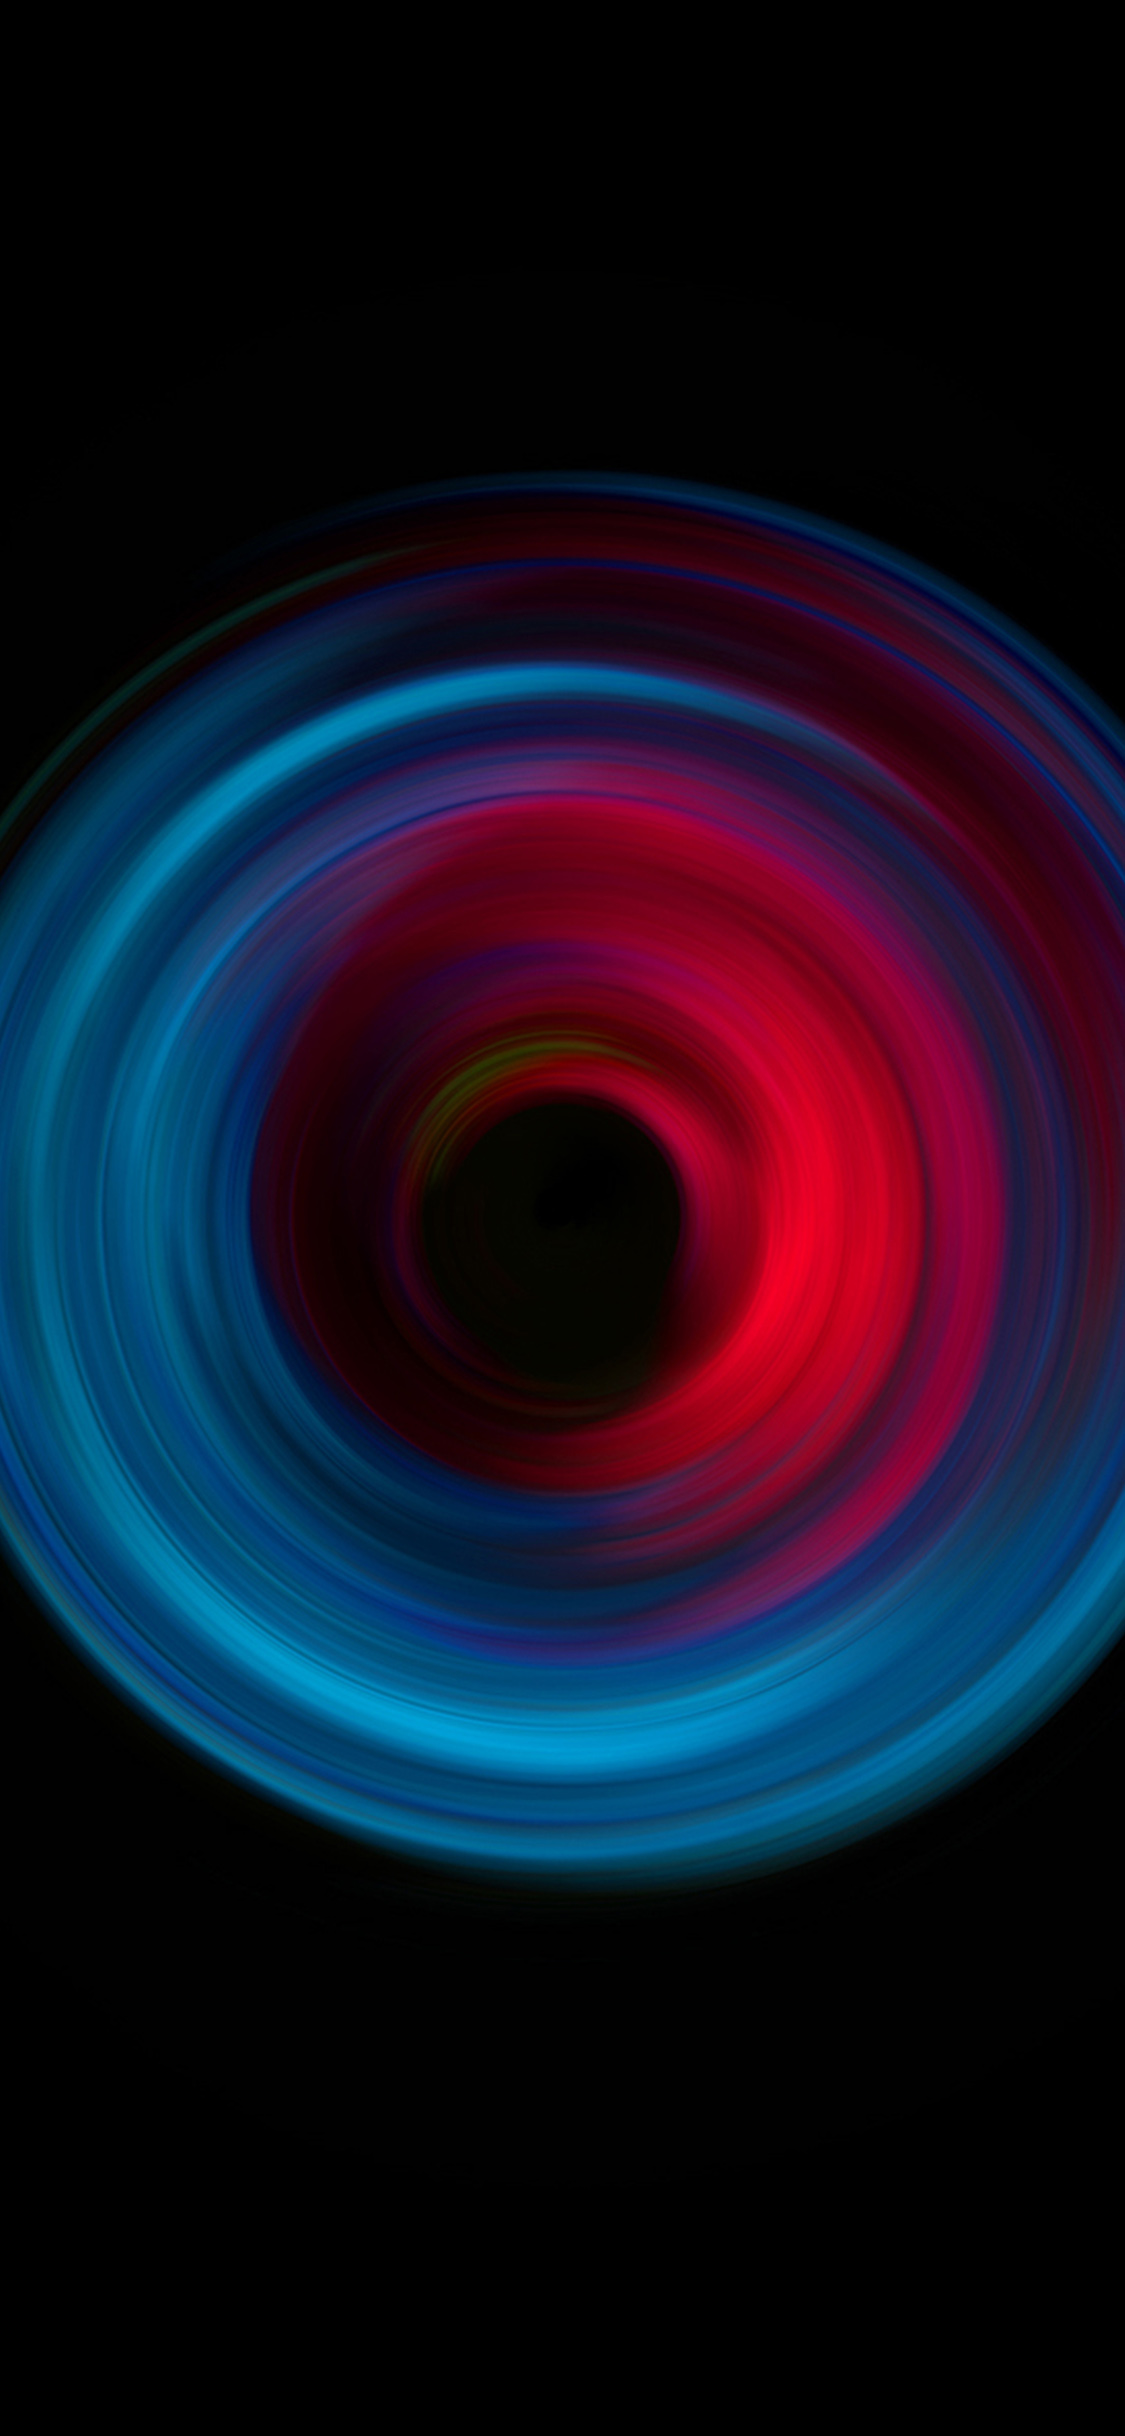 iPhoneXpapers.com-Apple-iPhone-wallpaper-vw77-circle-dark-blue-red-pattern-background